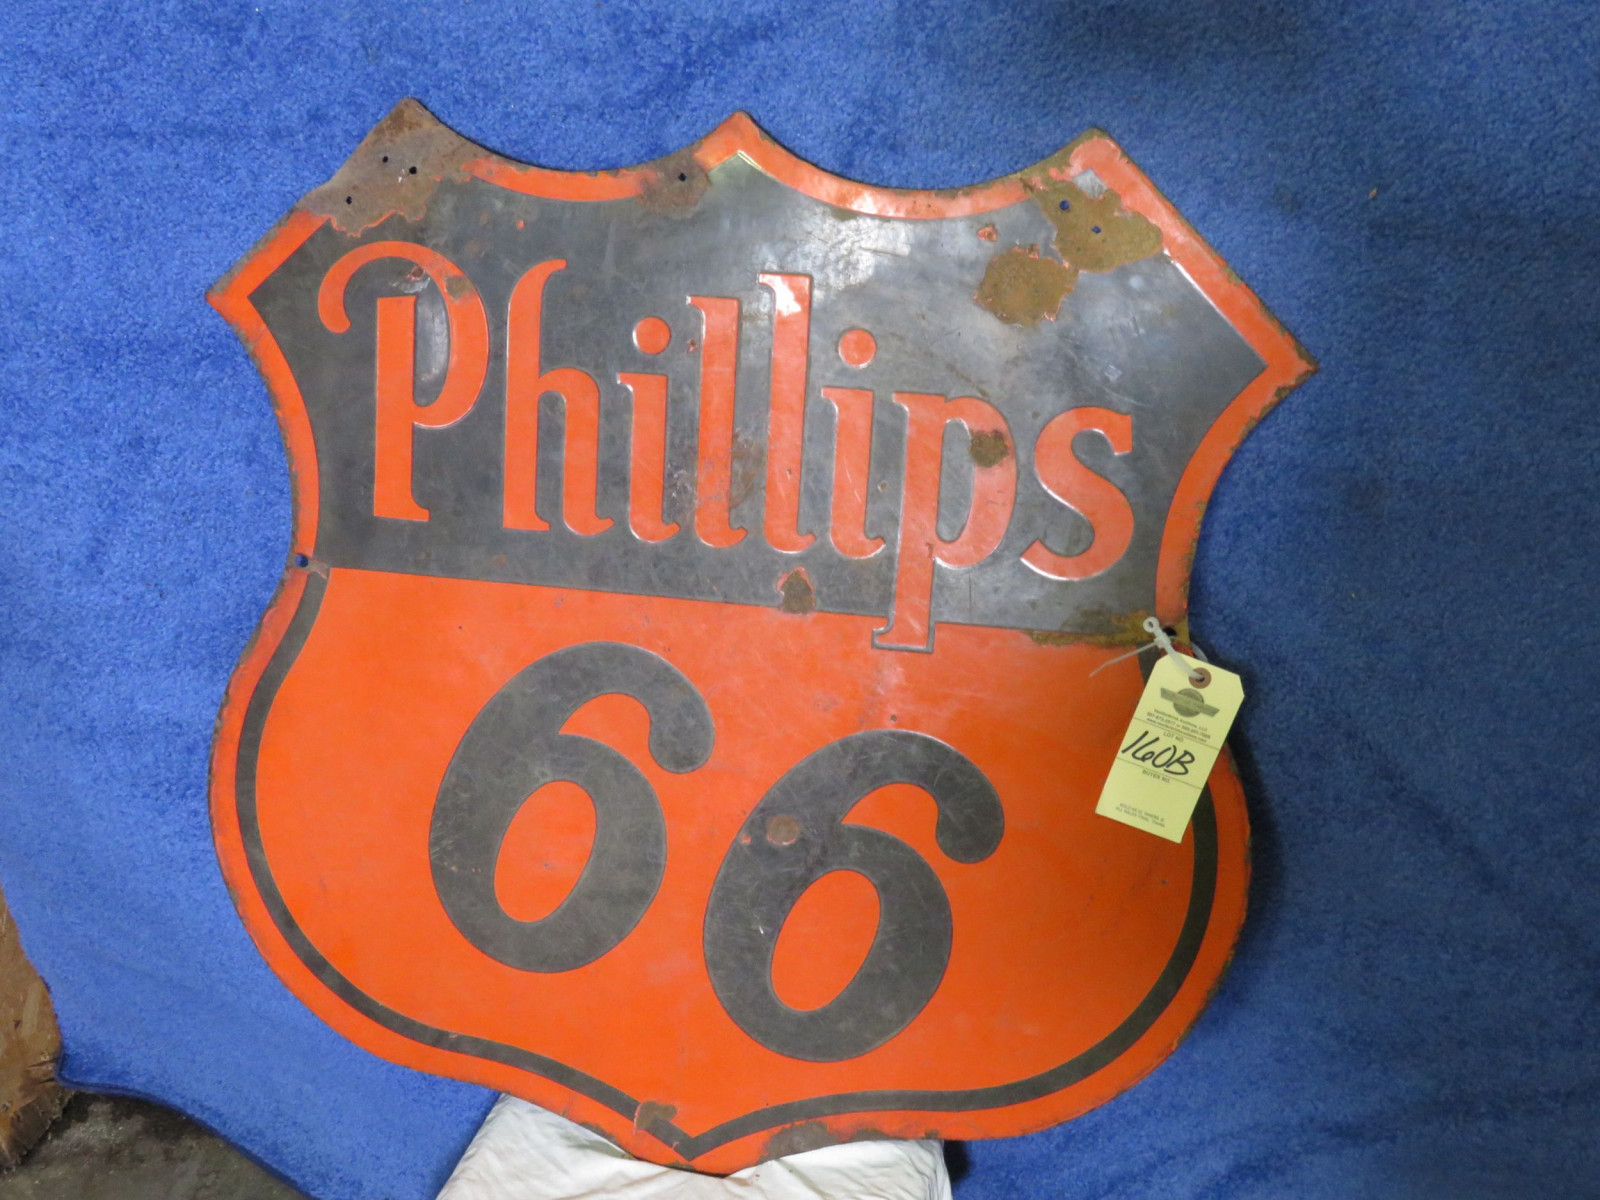 Phillips 66 DS Porcelain Sign - Image 1